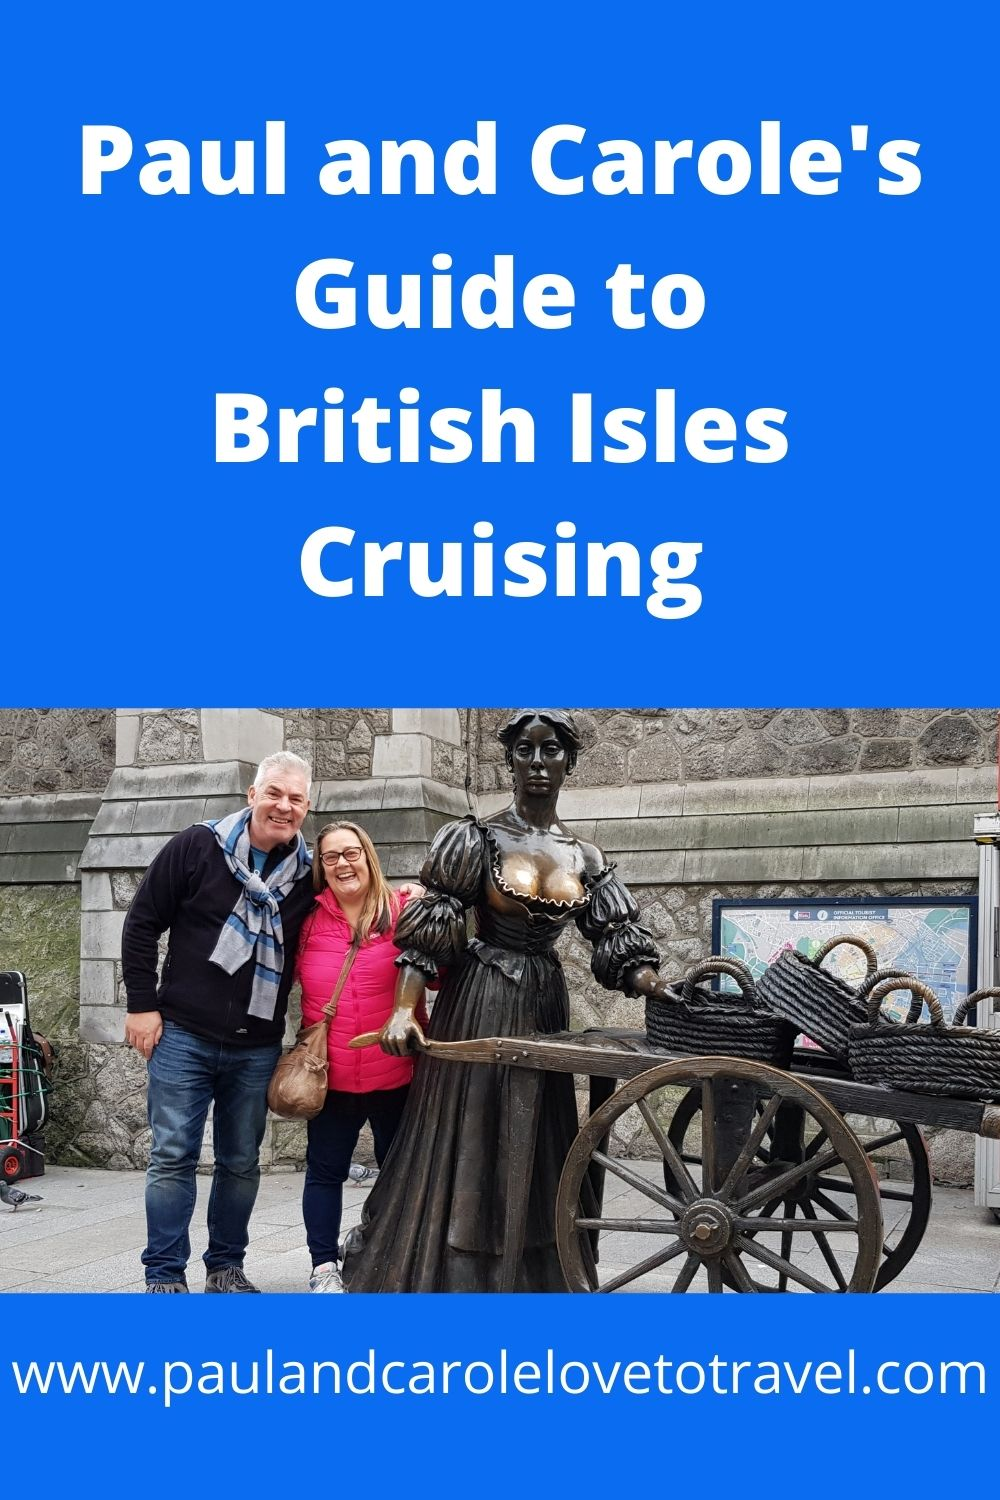 Paul and Carole's Guide to British Isles Cruising pin